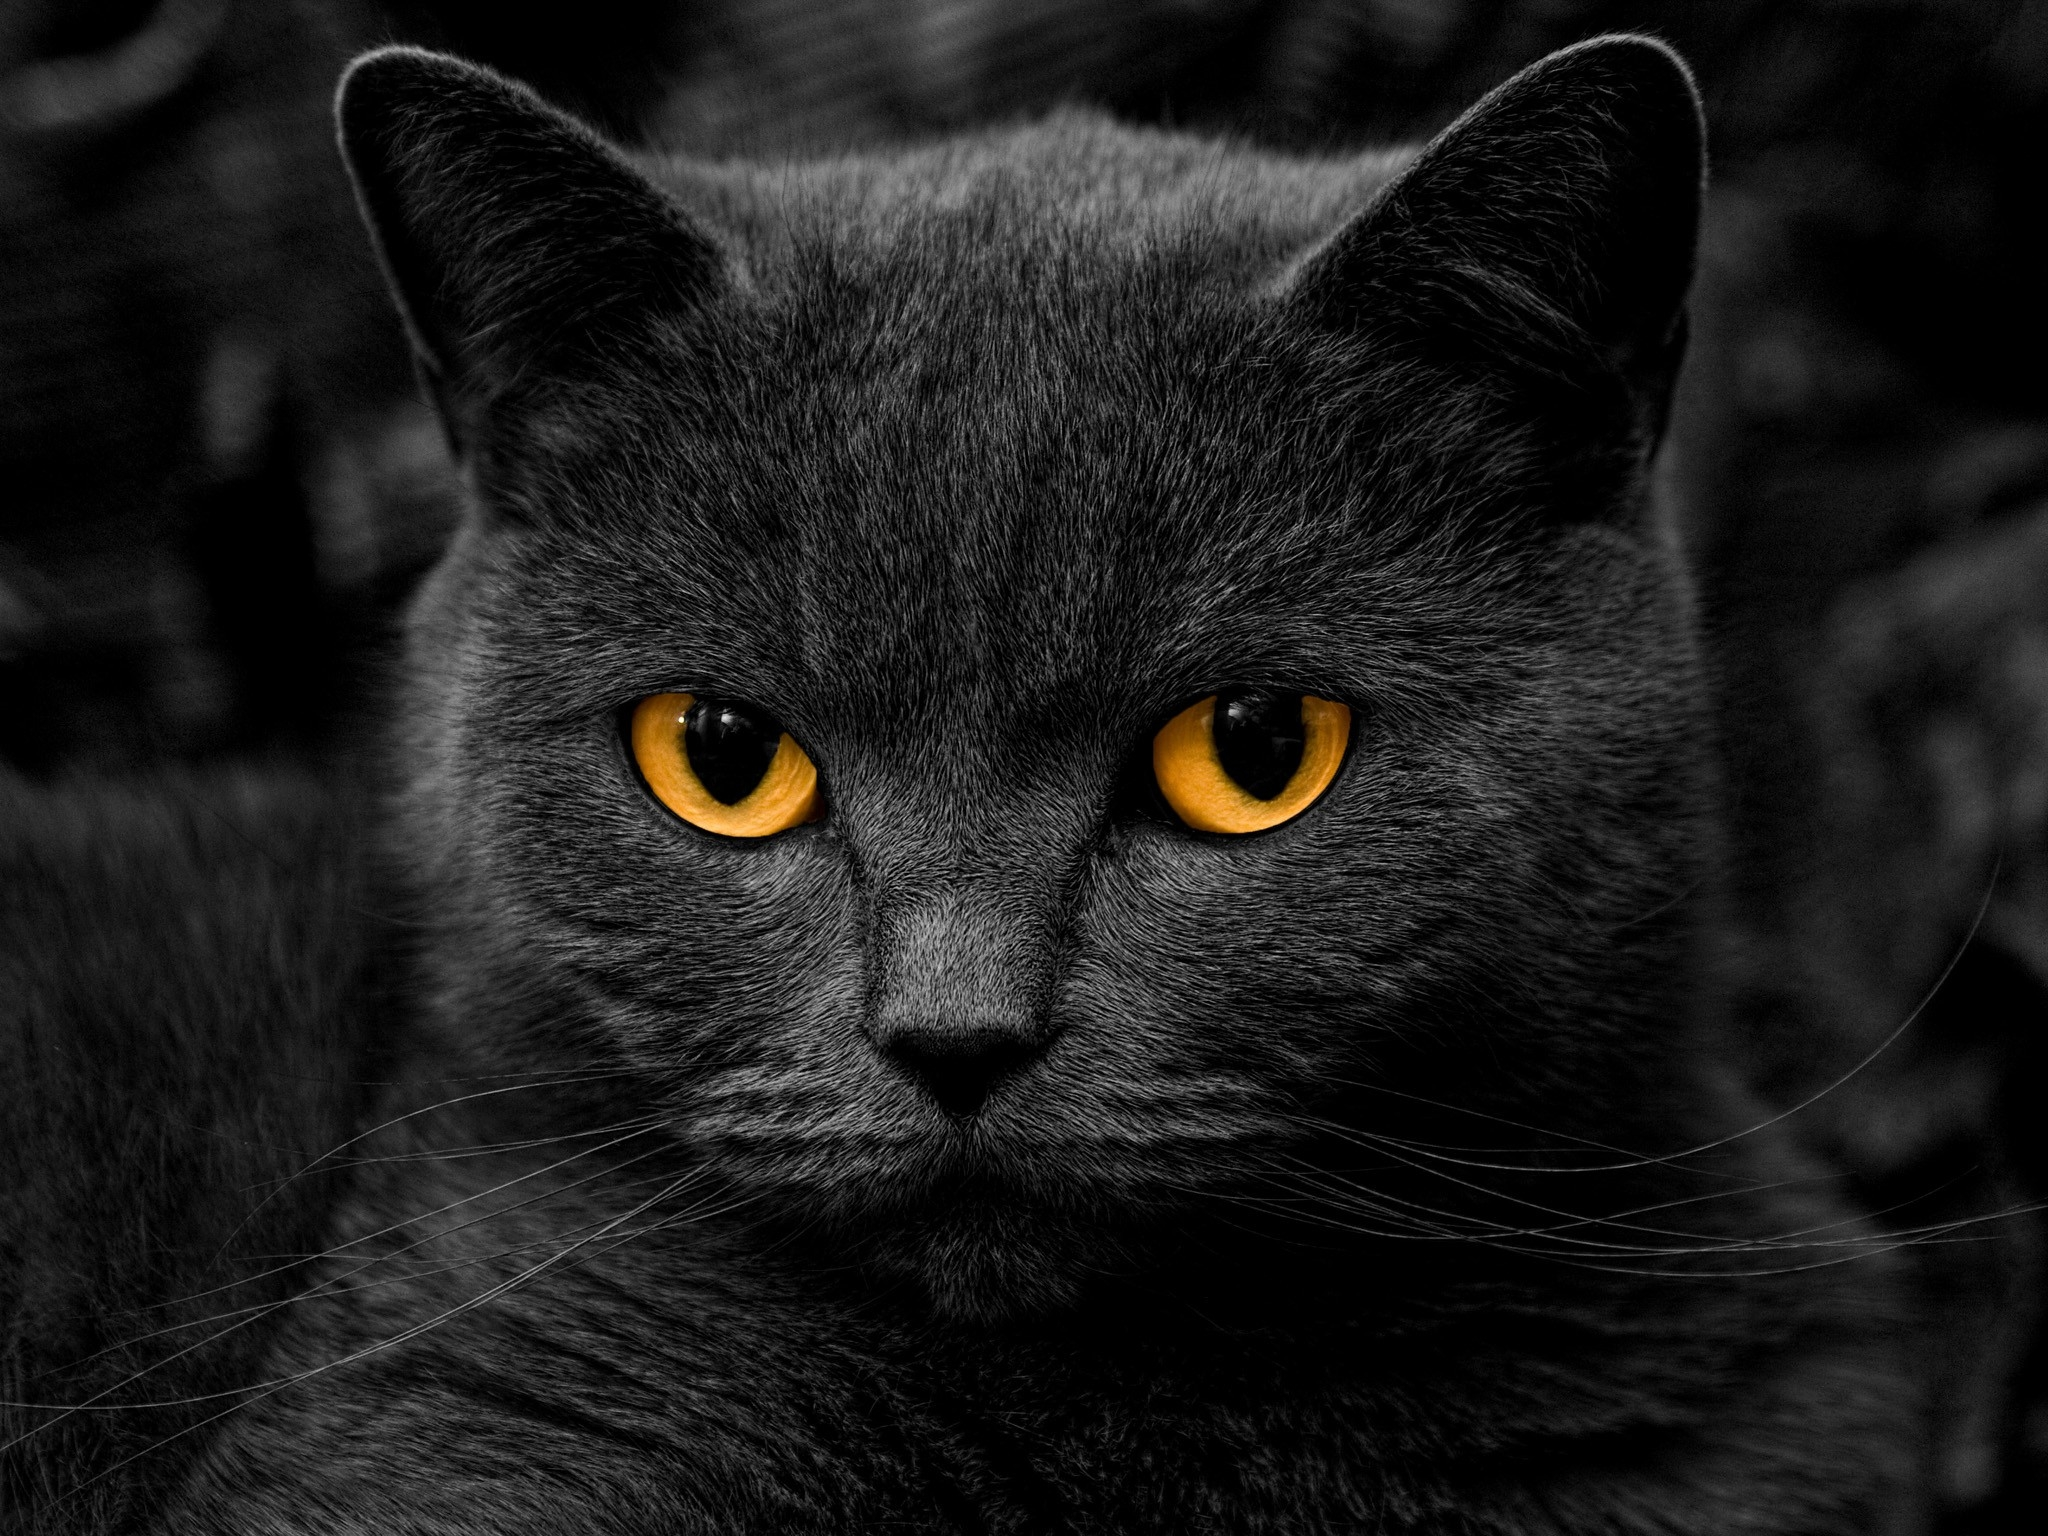 144240 download wallpaper Animals, Cat, Briton, Eyes, Sight, Opinion screensavers and pictures for free